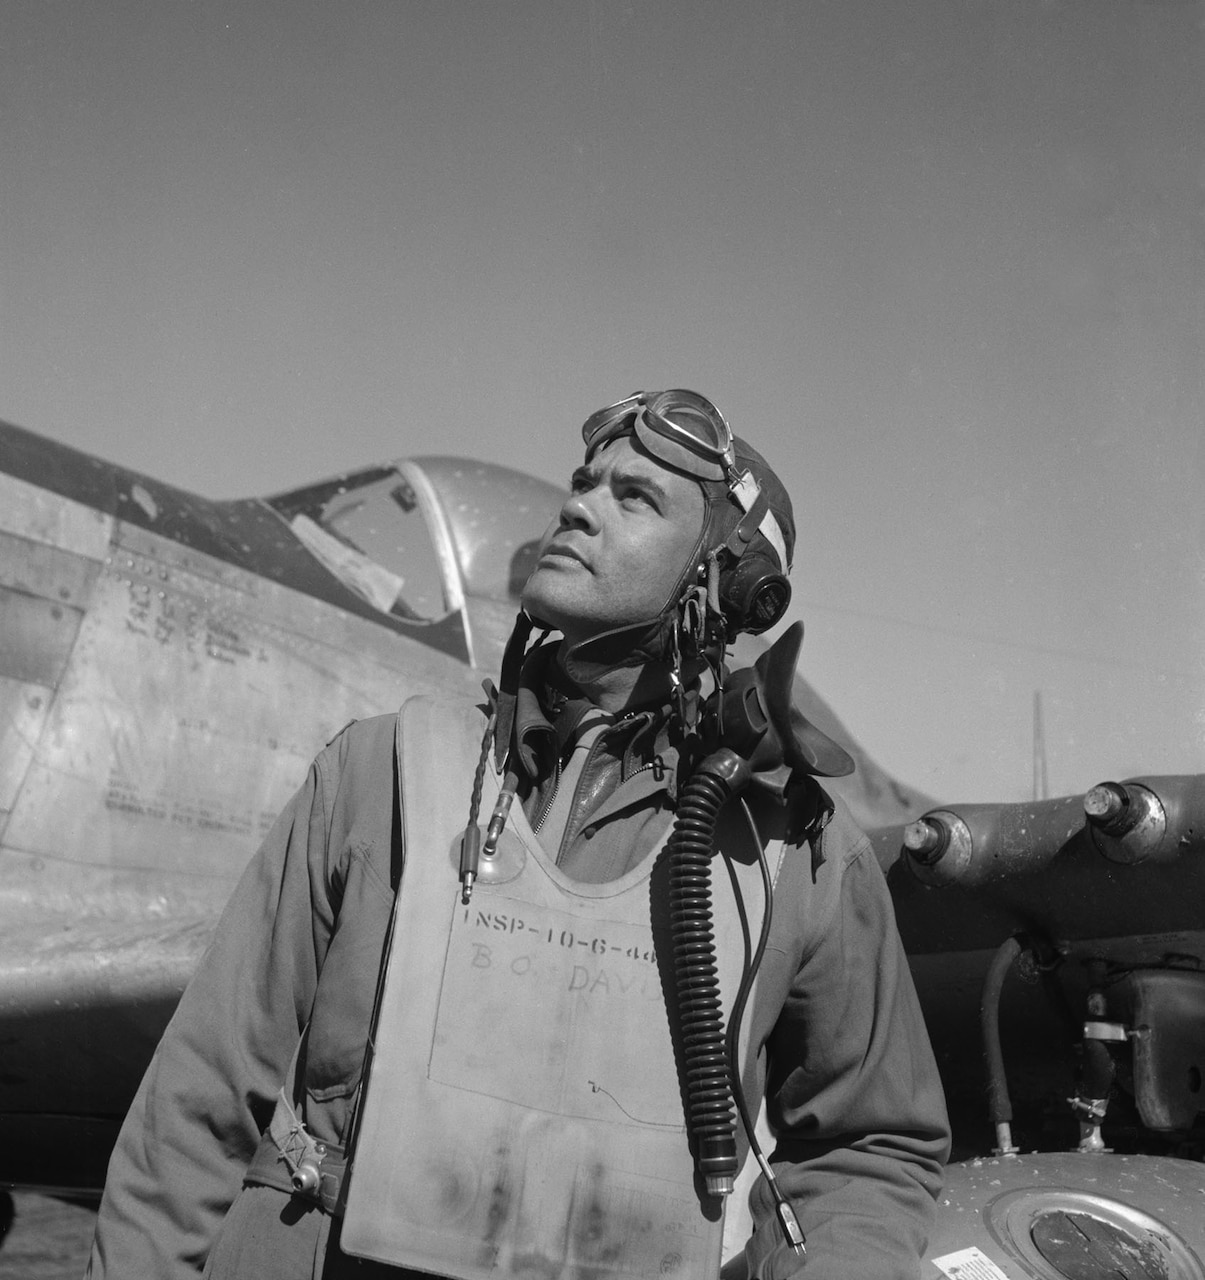 An airman looks at the sky while standing in front of a World War II-era aircraft.